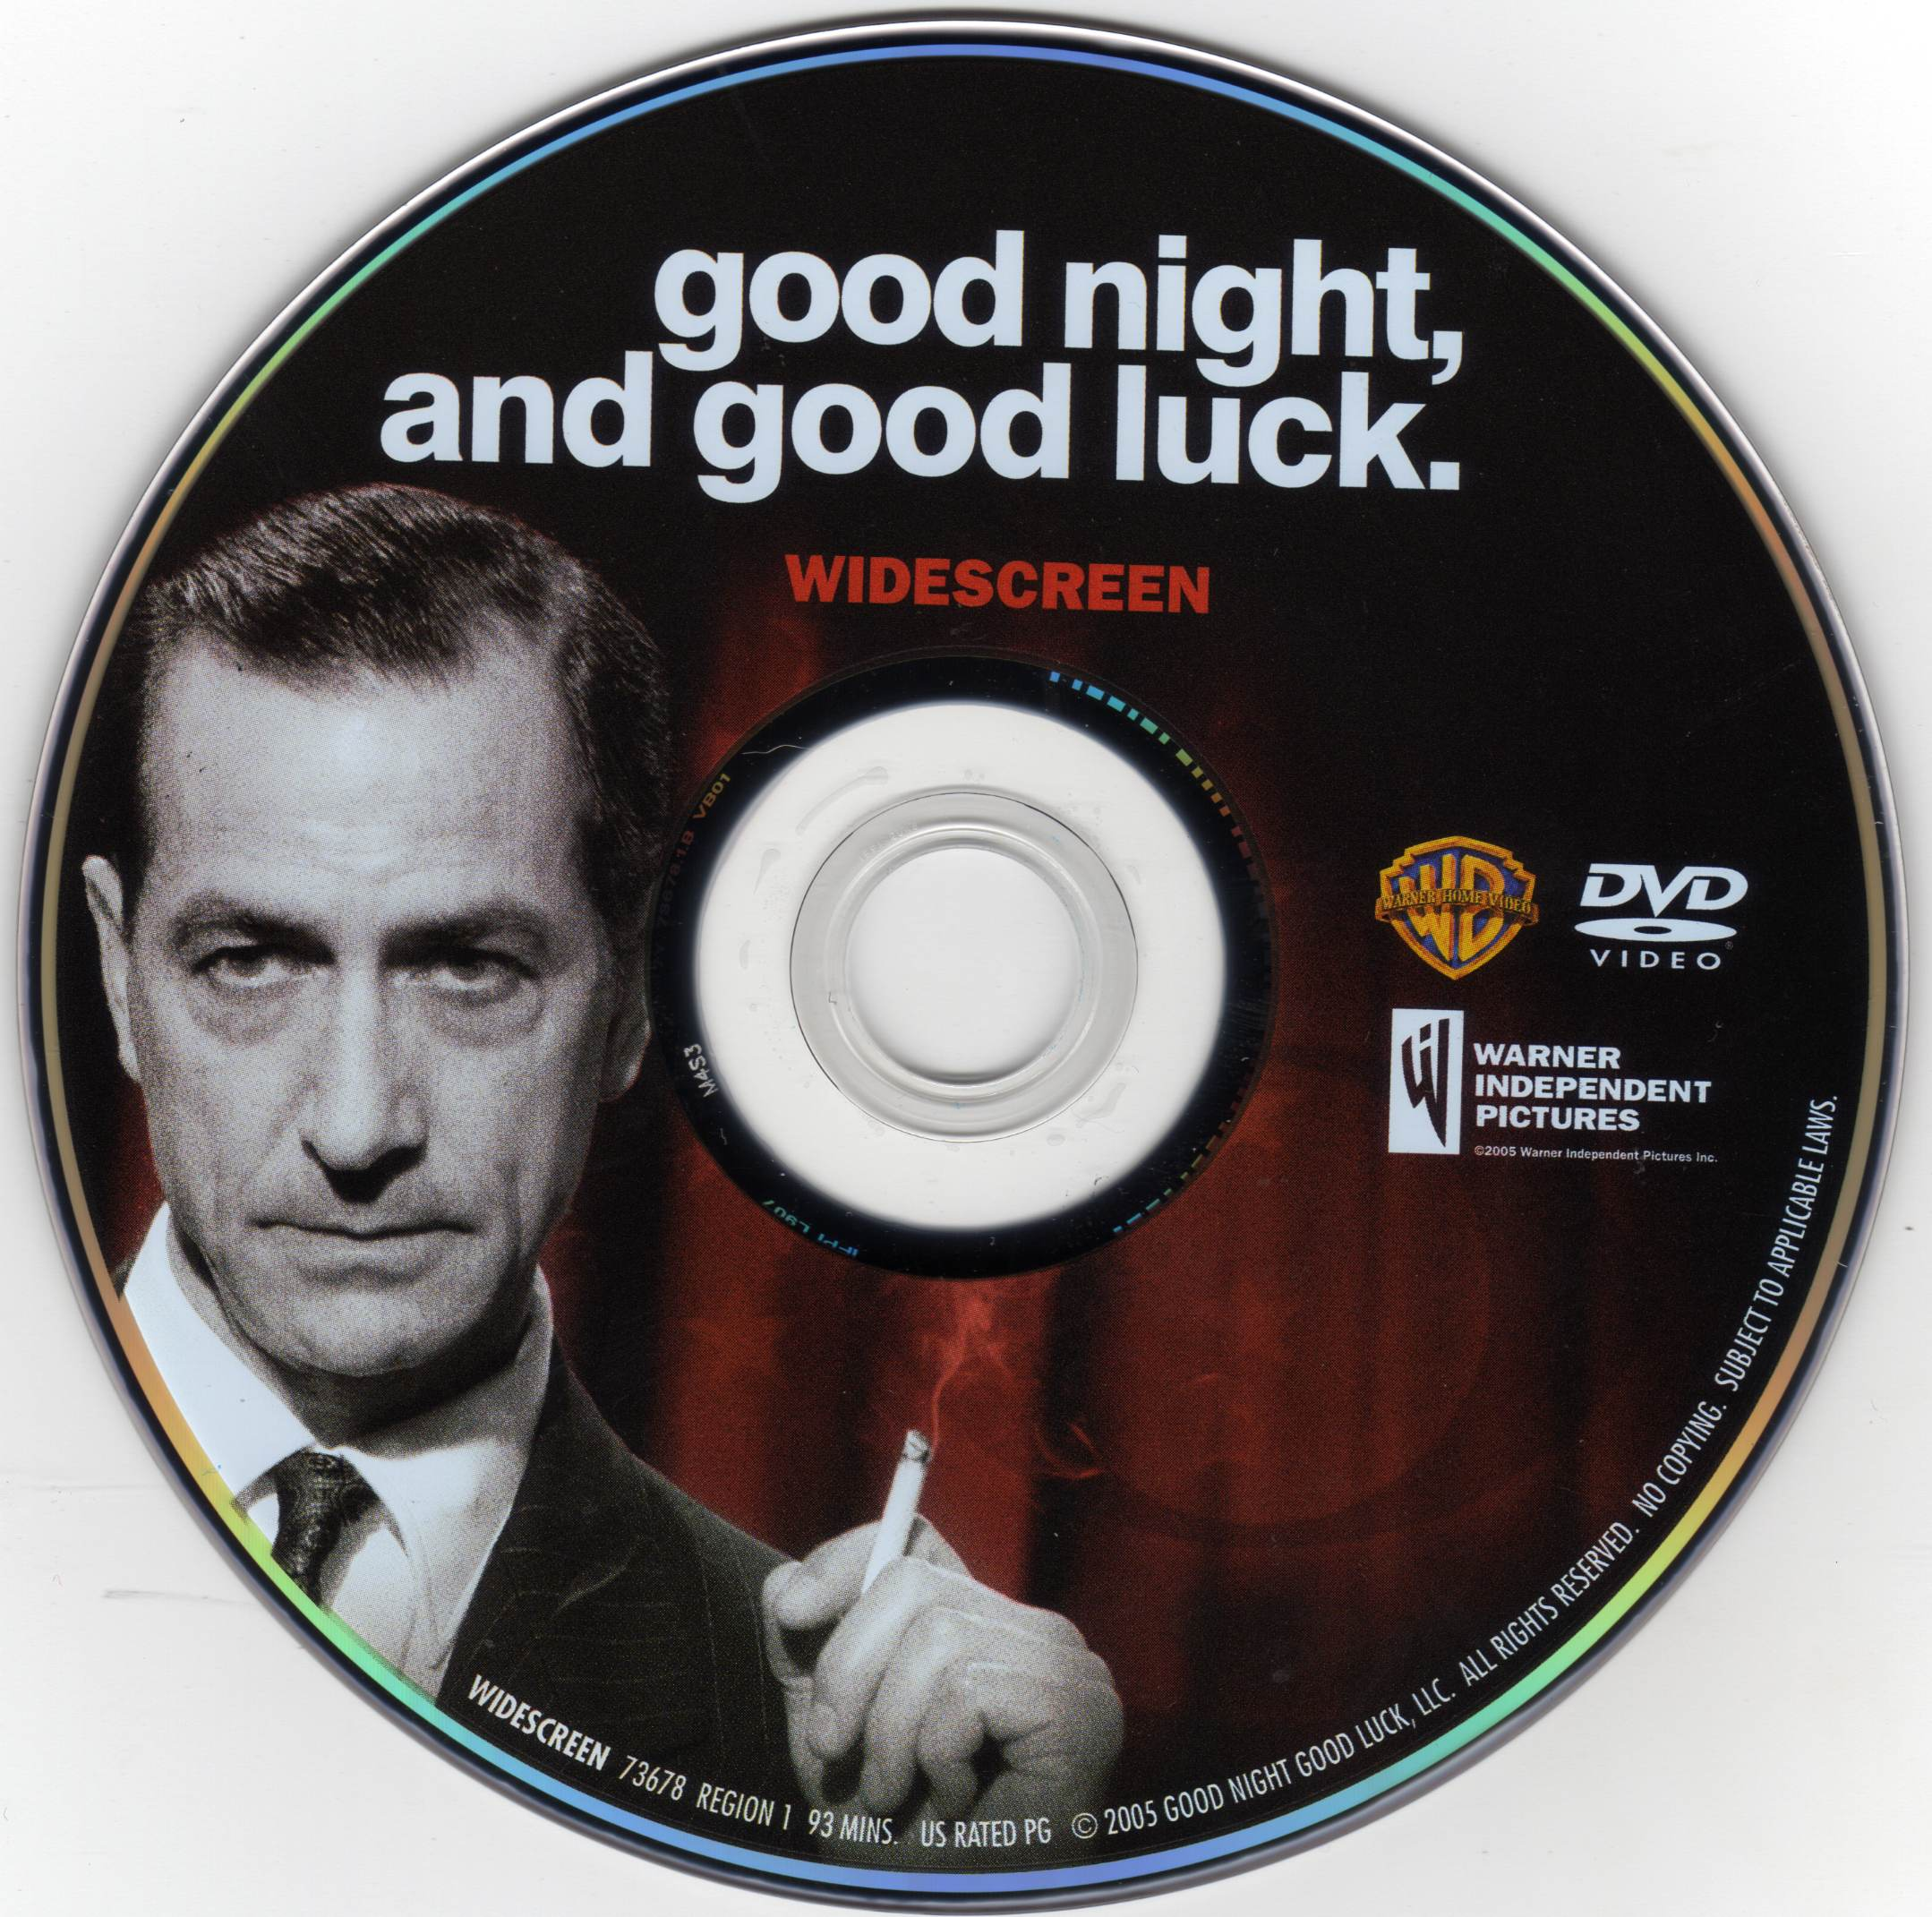 good night and good luck movie Good night and good luck full movie online for free in hd quality good night and good luck full movie online for free in hd quality show more home genres latest.